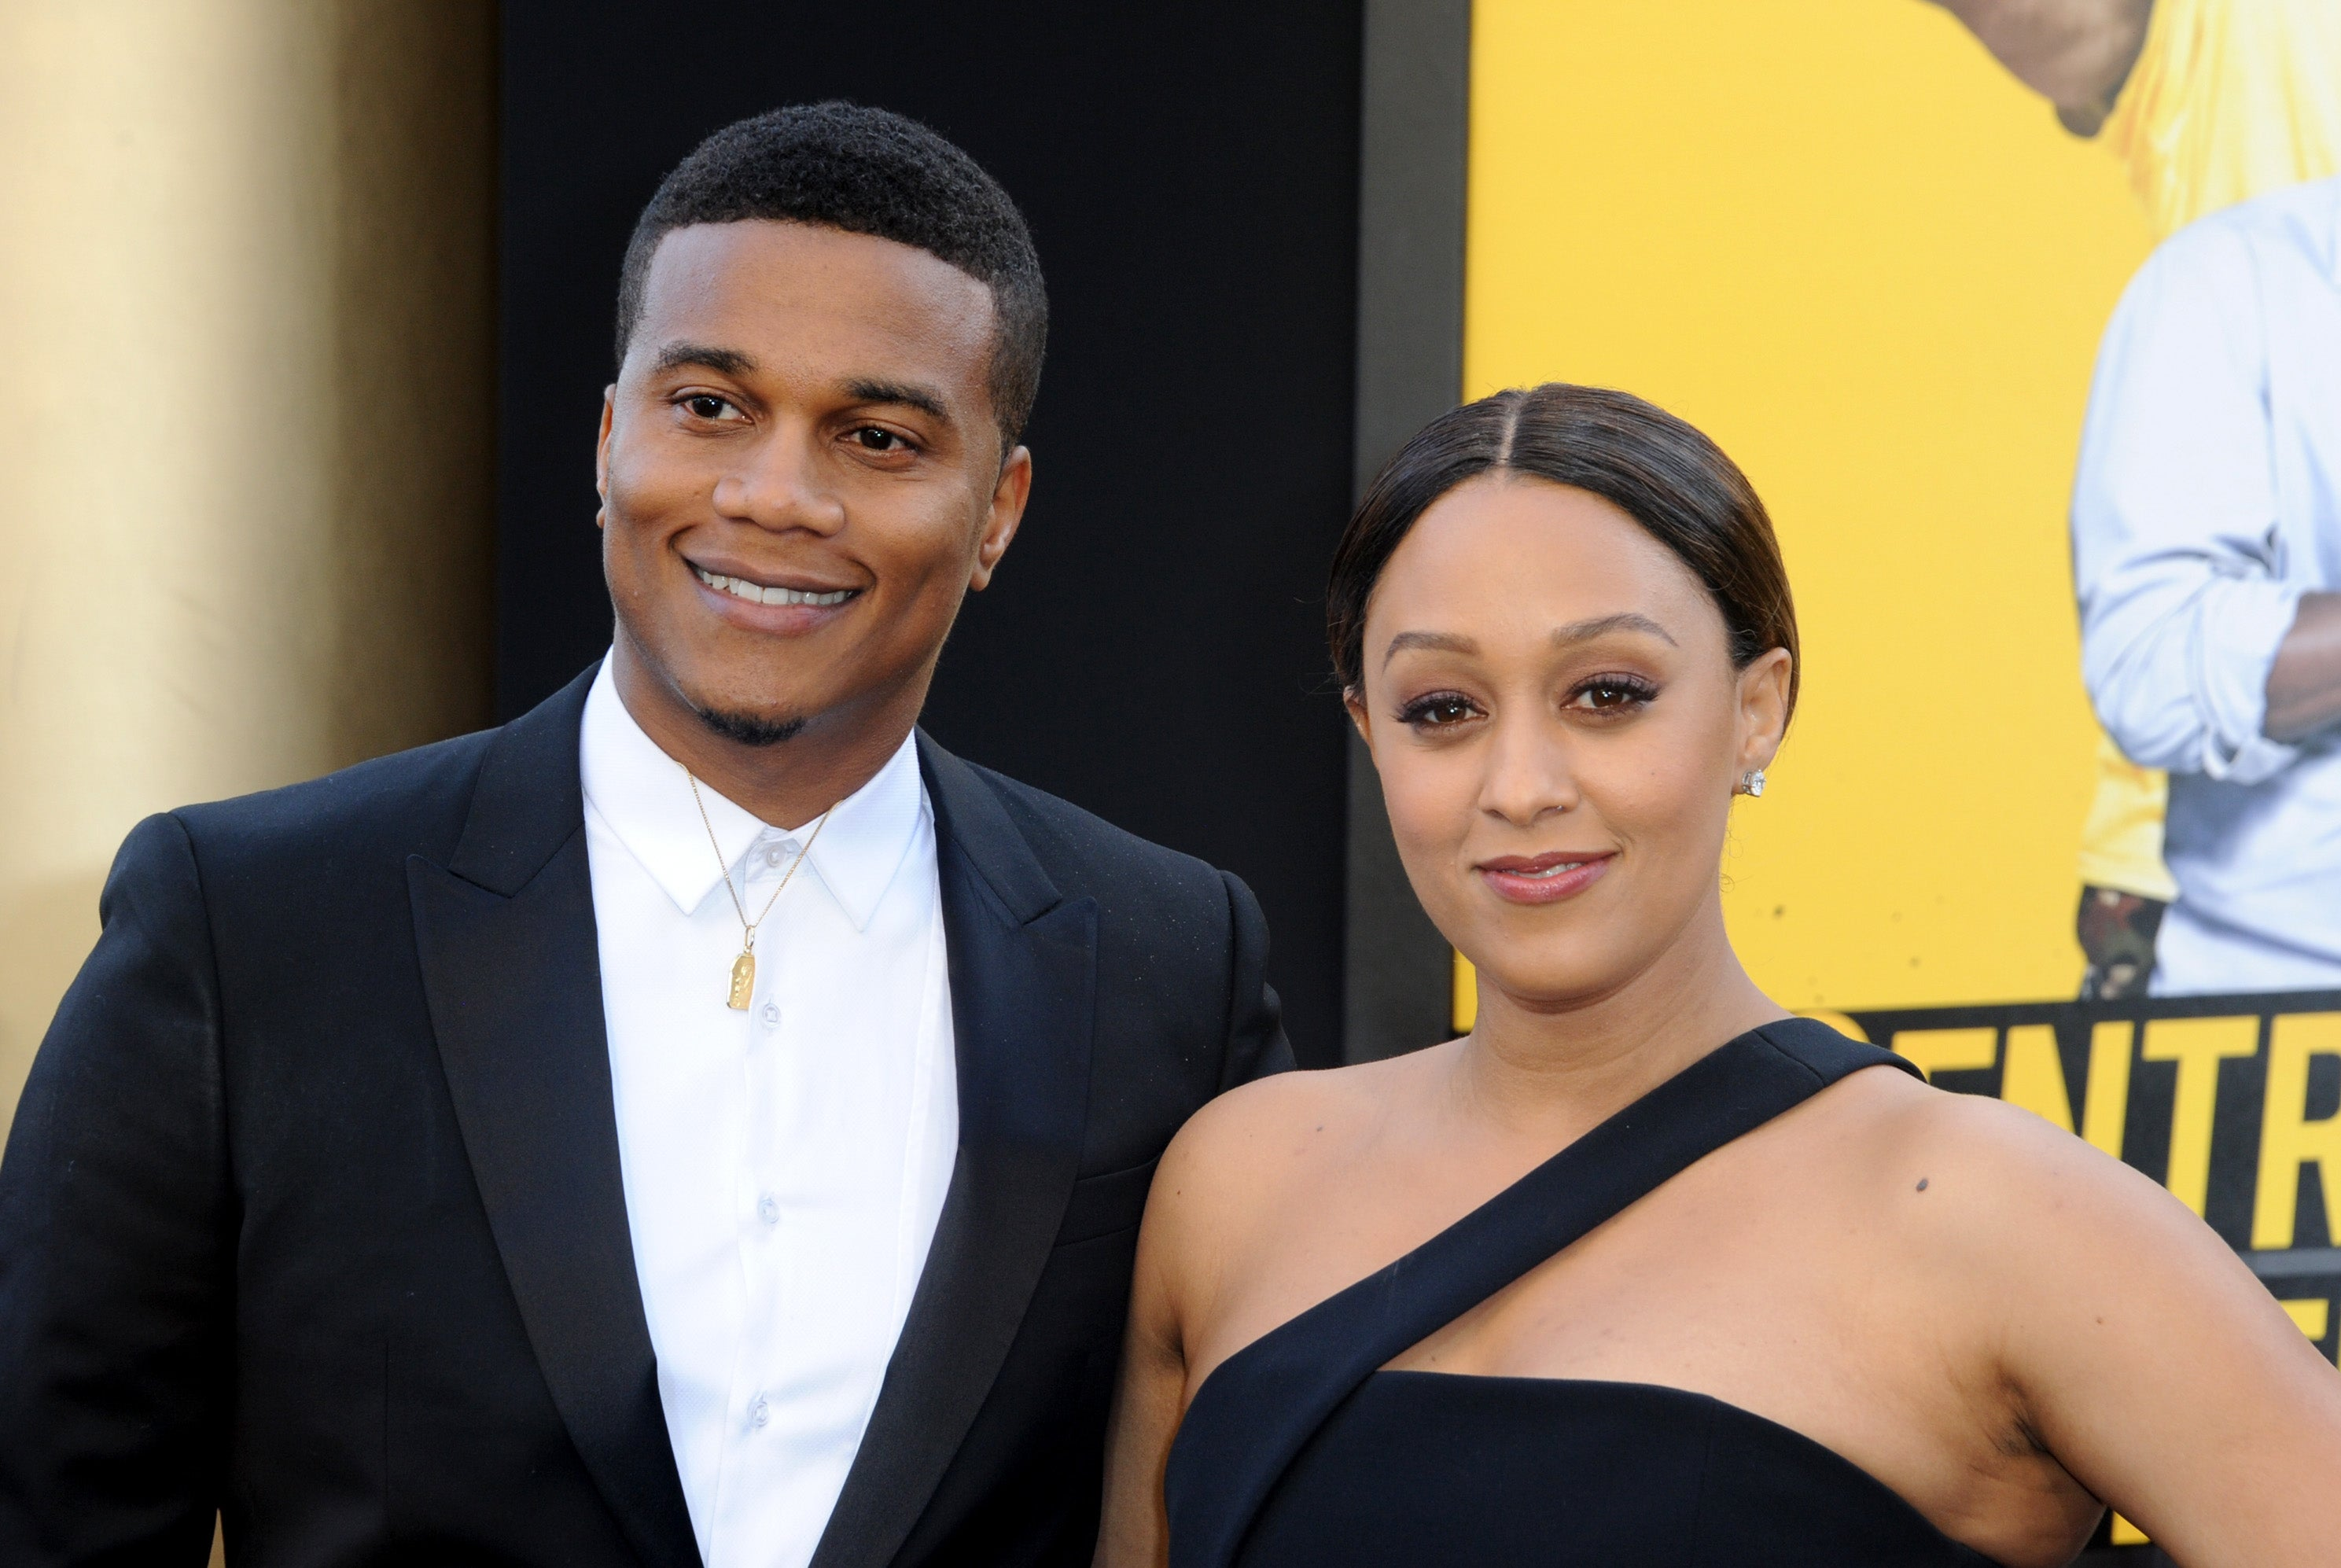 Tia Mowry And Cory Hardrict Walk Together For A Very Personal Cause